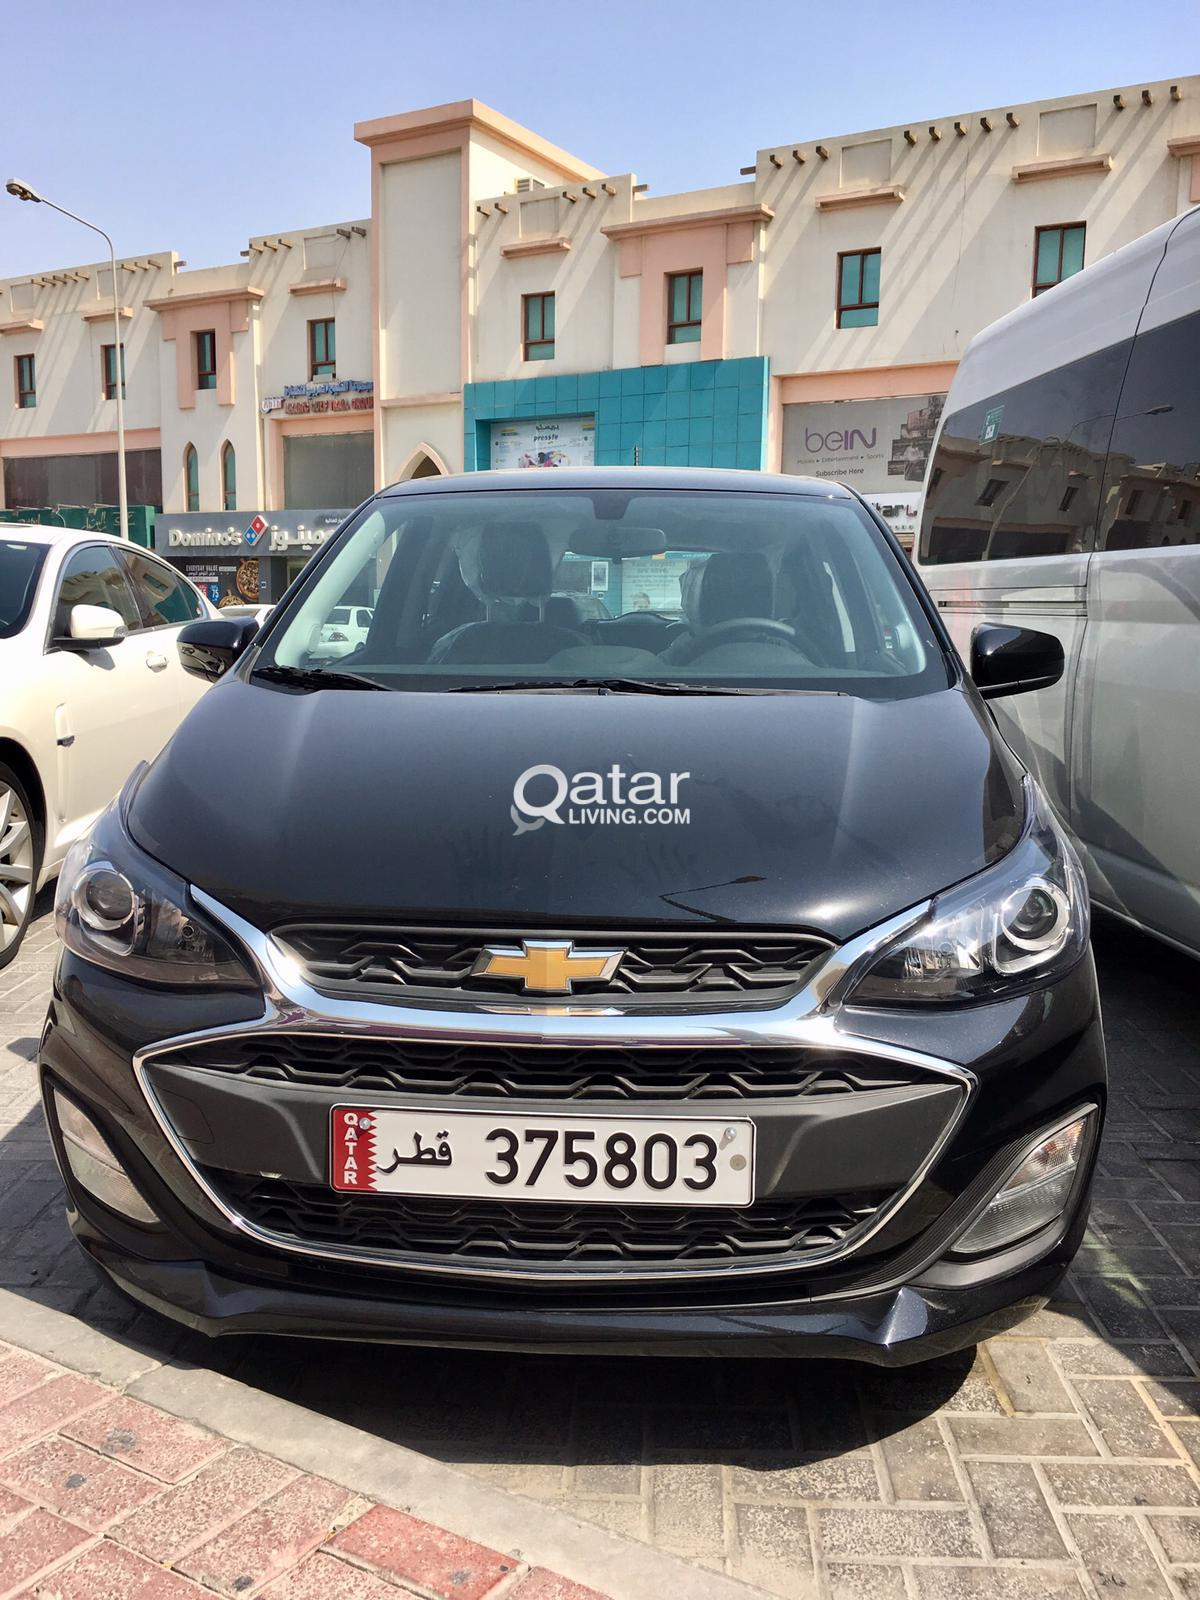 chevrolet spark started from 45Qr